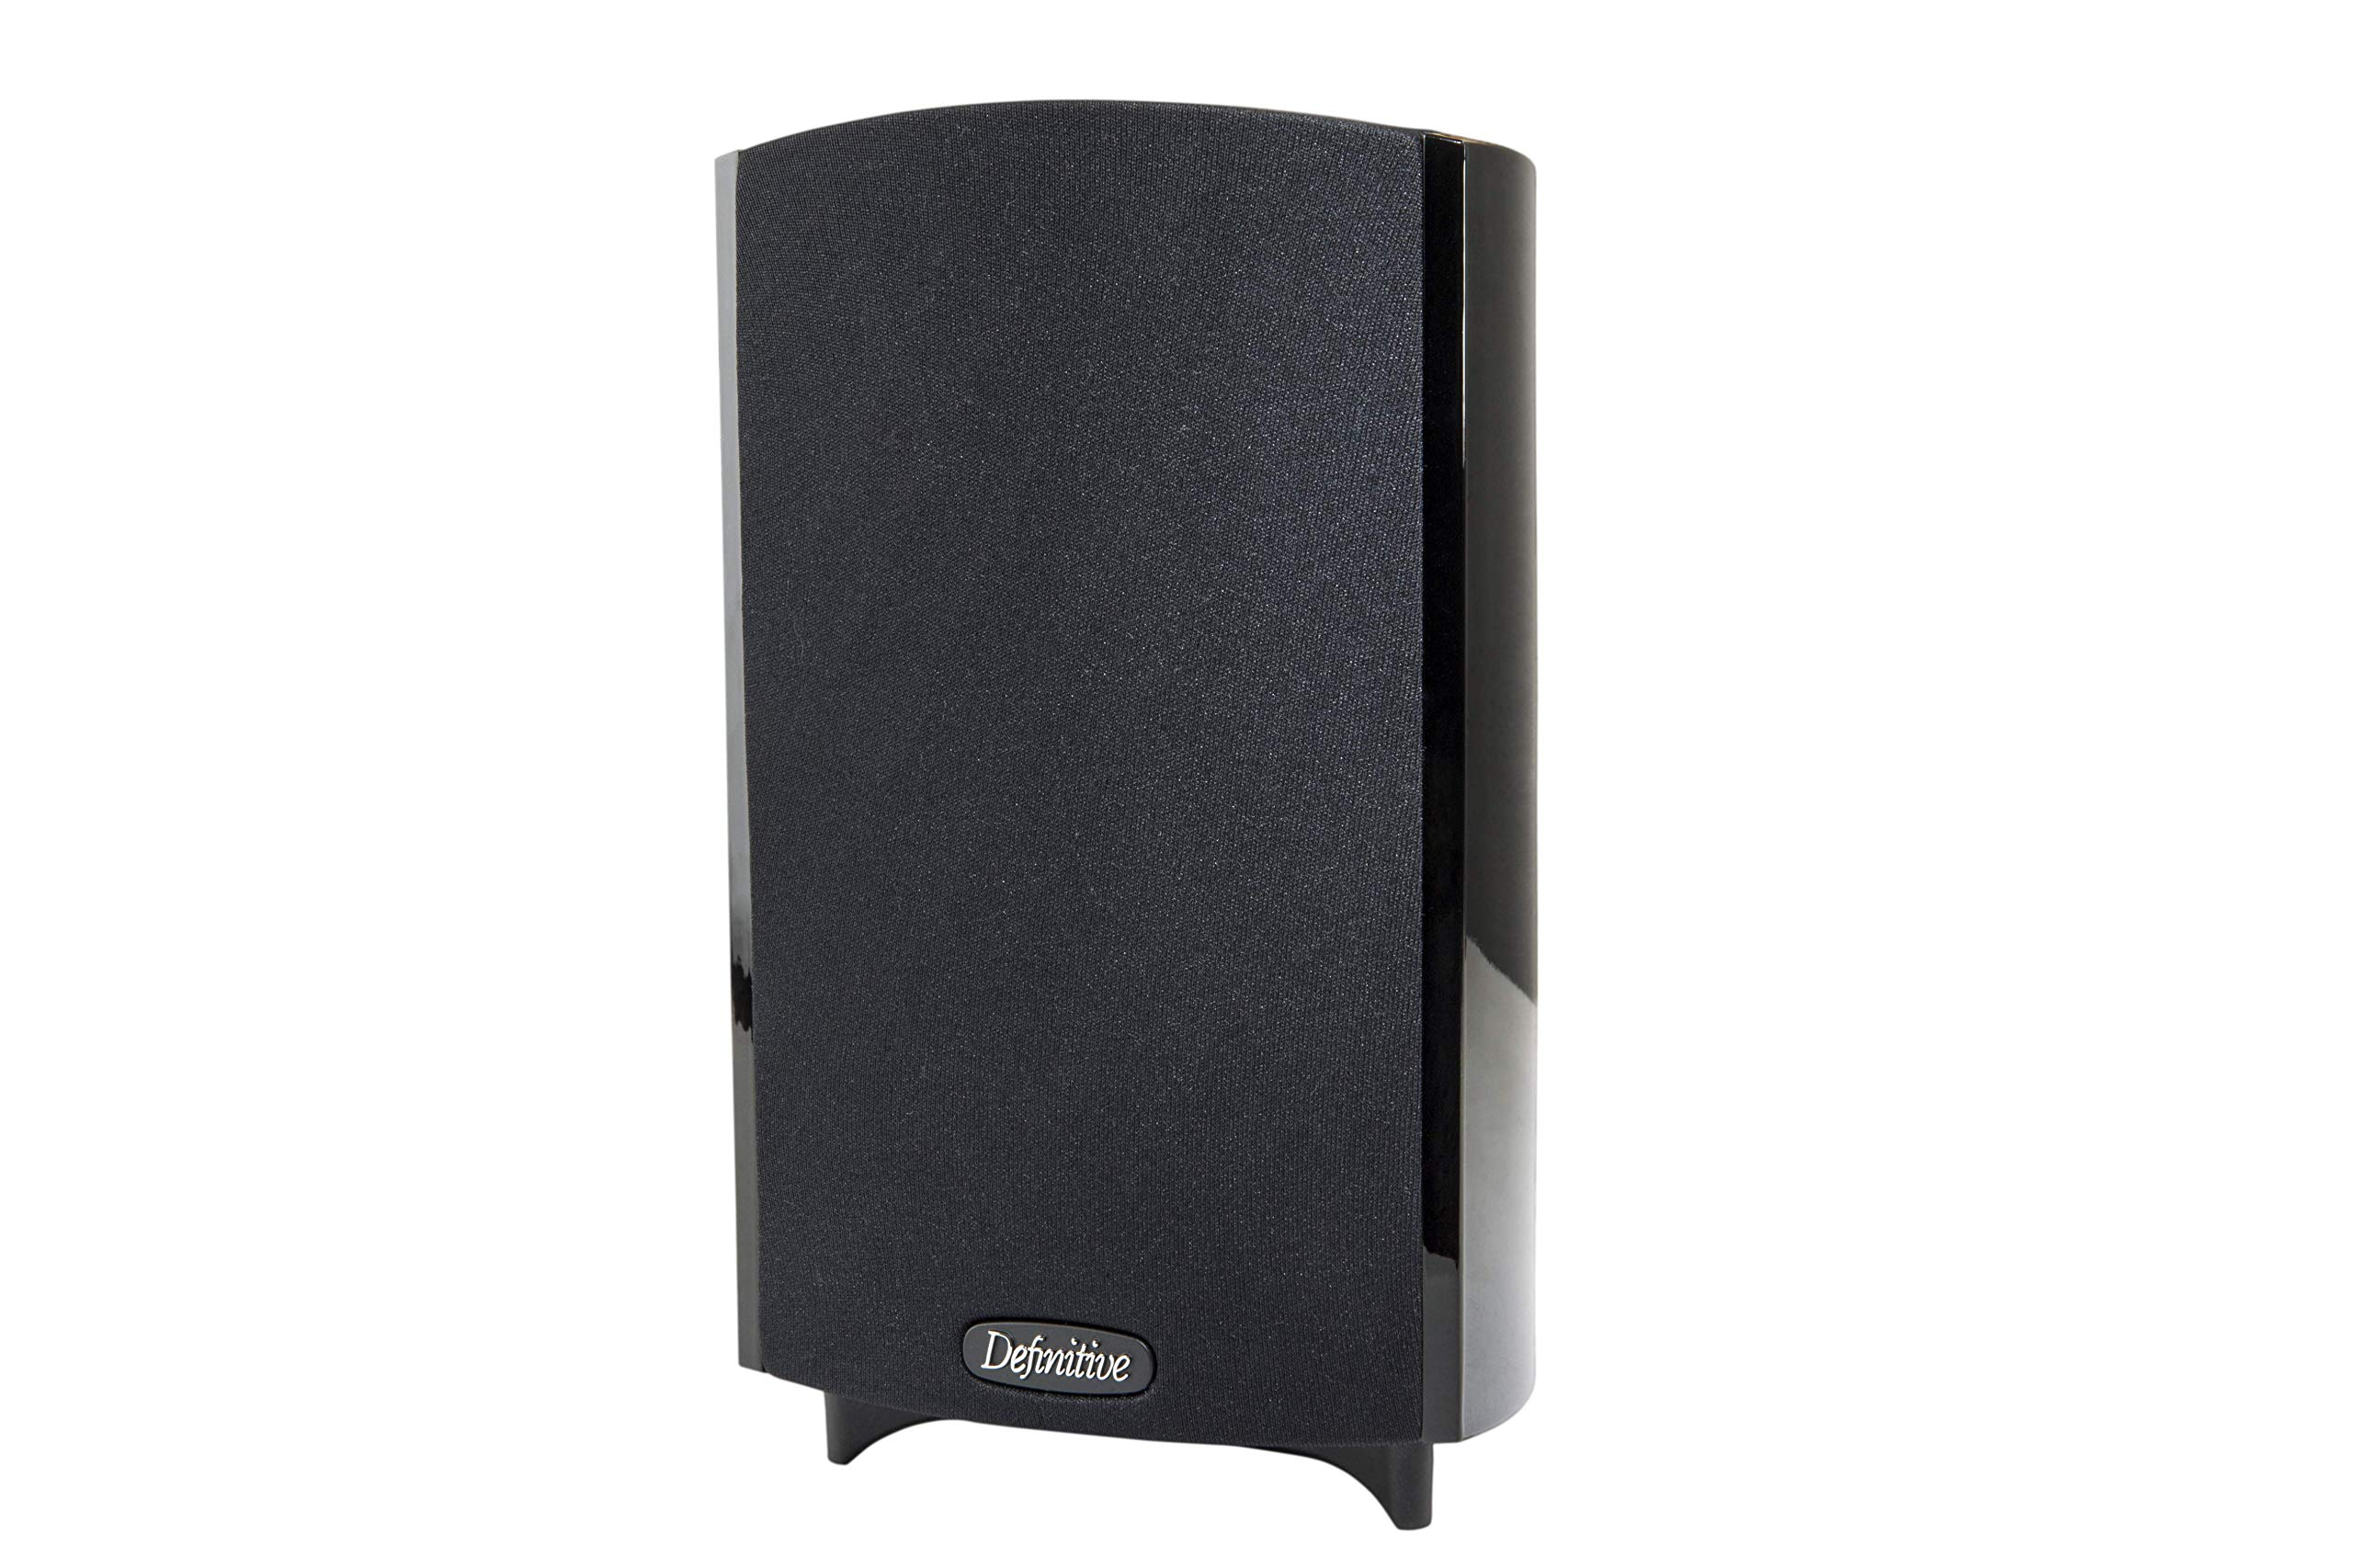 w//BDSS Drivers Pair Definitive Technology ProMonitor 800 Satellite Bookshelf Speaker Pure Aluminum Dome Tweeters /& Planar Pressure Coupled Mid//Bass Radiators for Home Theater Sound Quality Black